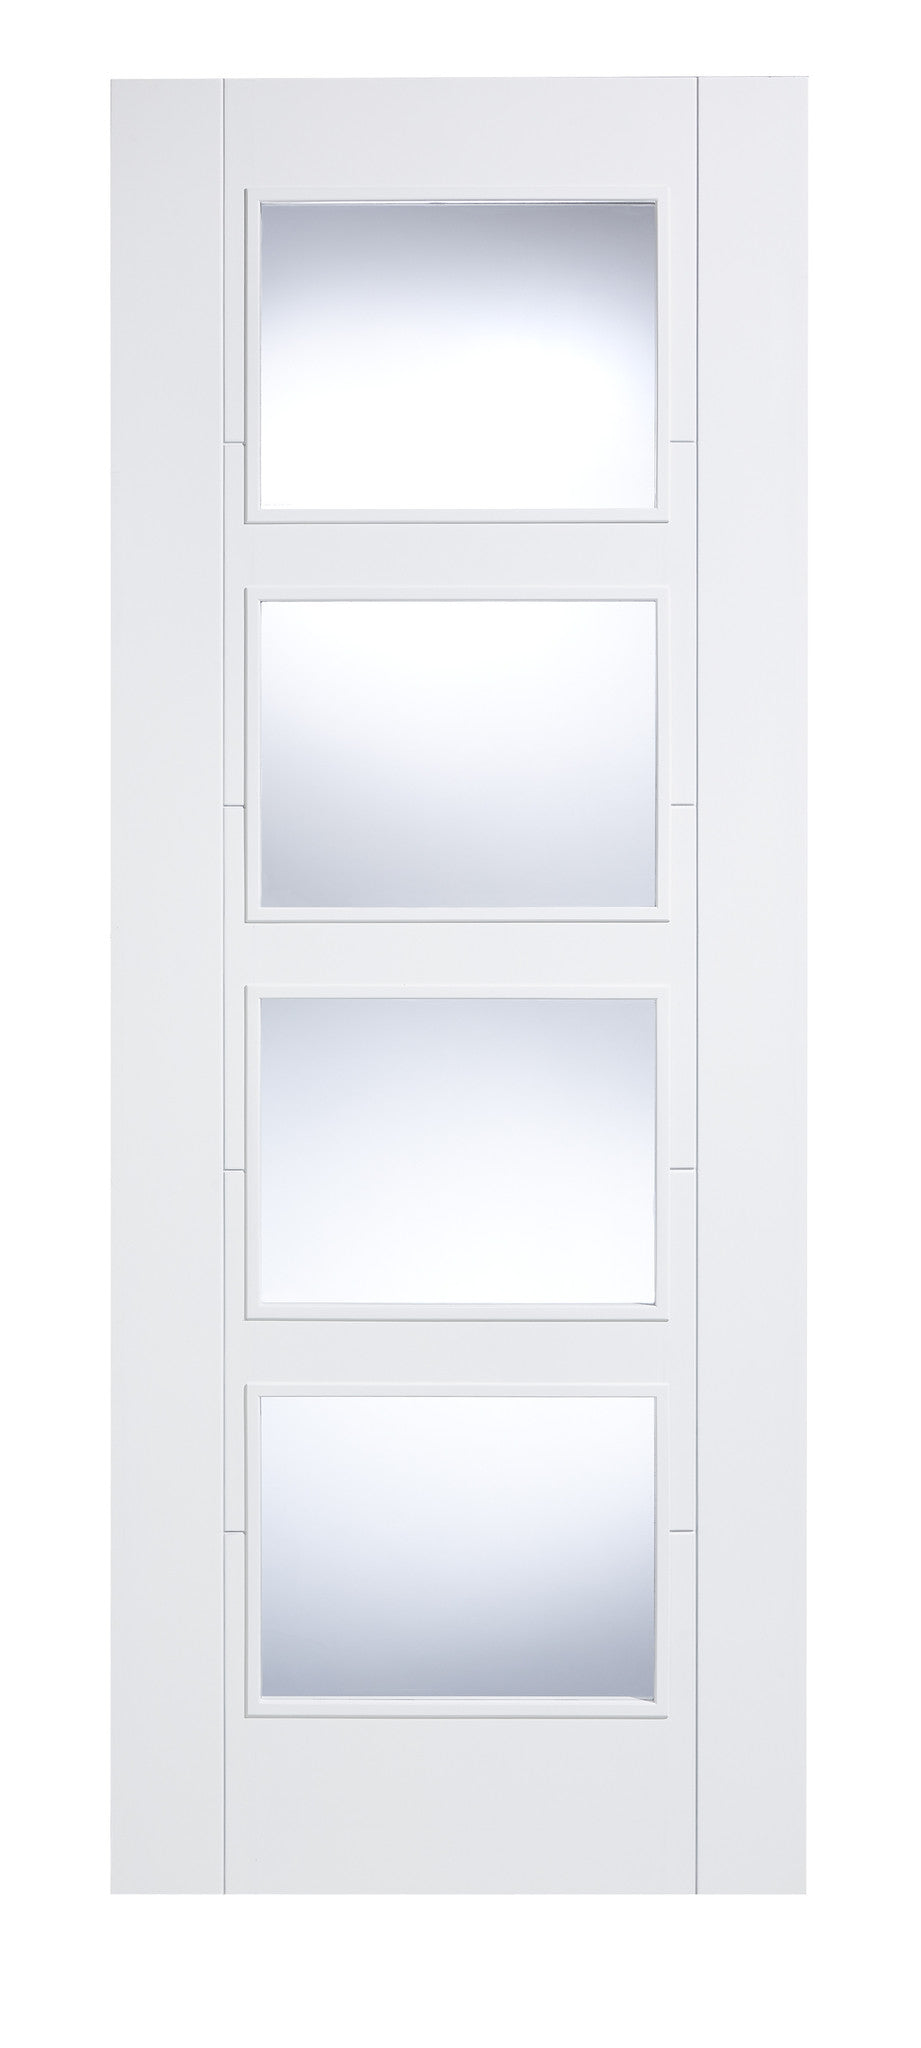 Buy Lpd Internal Vancouver White 4 Light Clear Glass Door Online Now